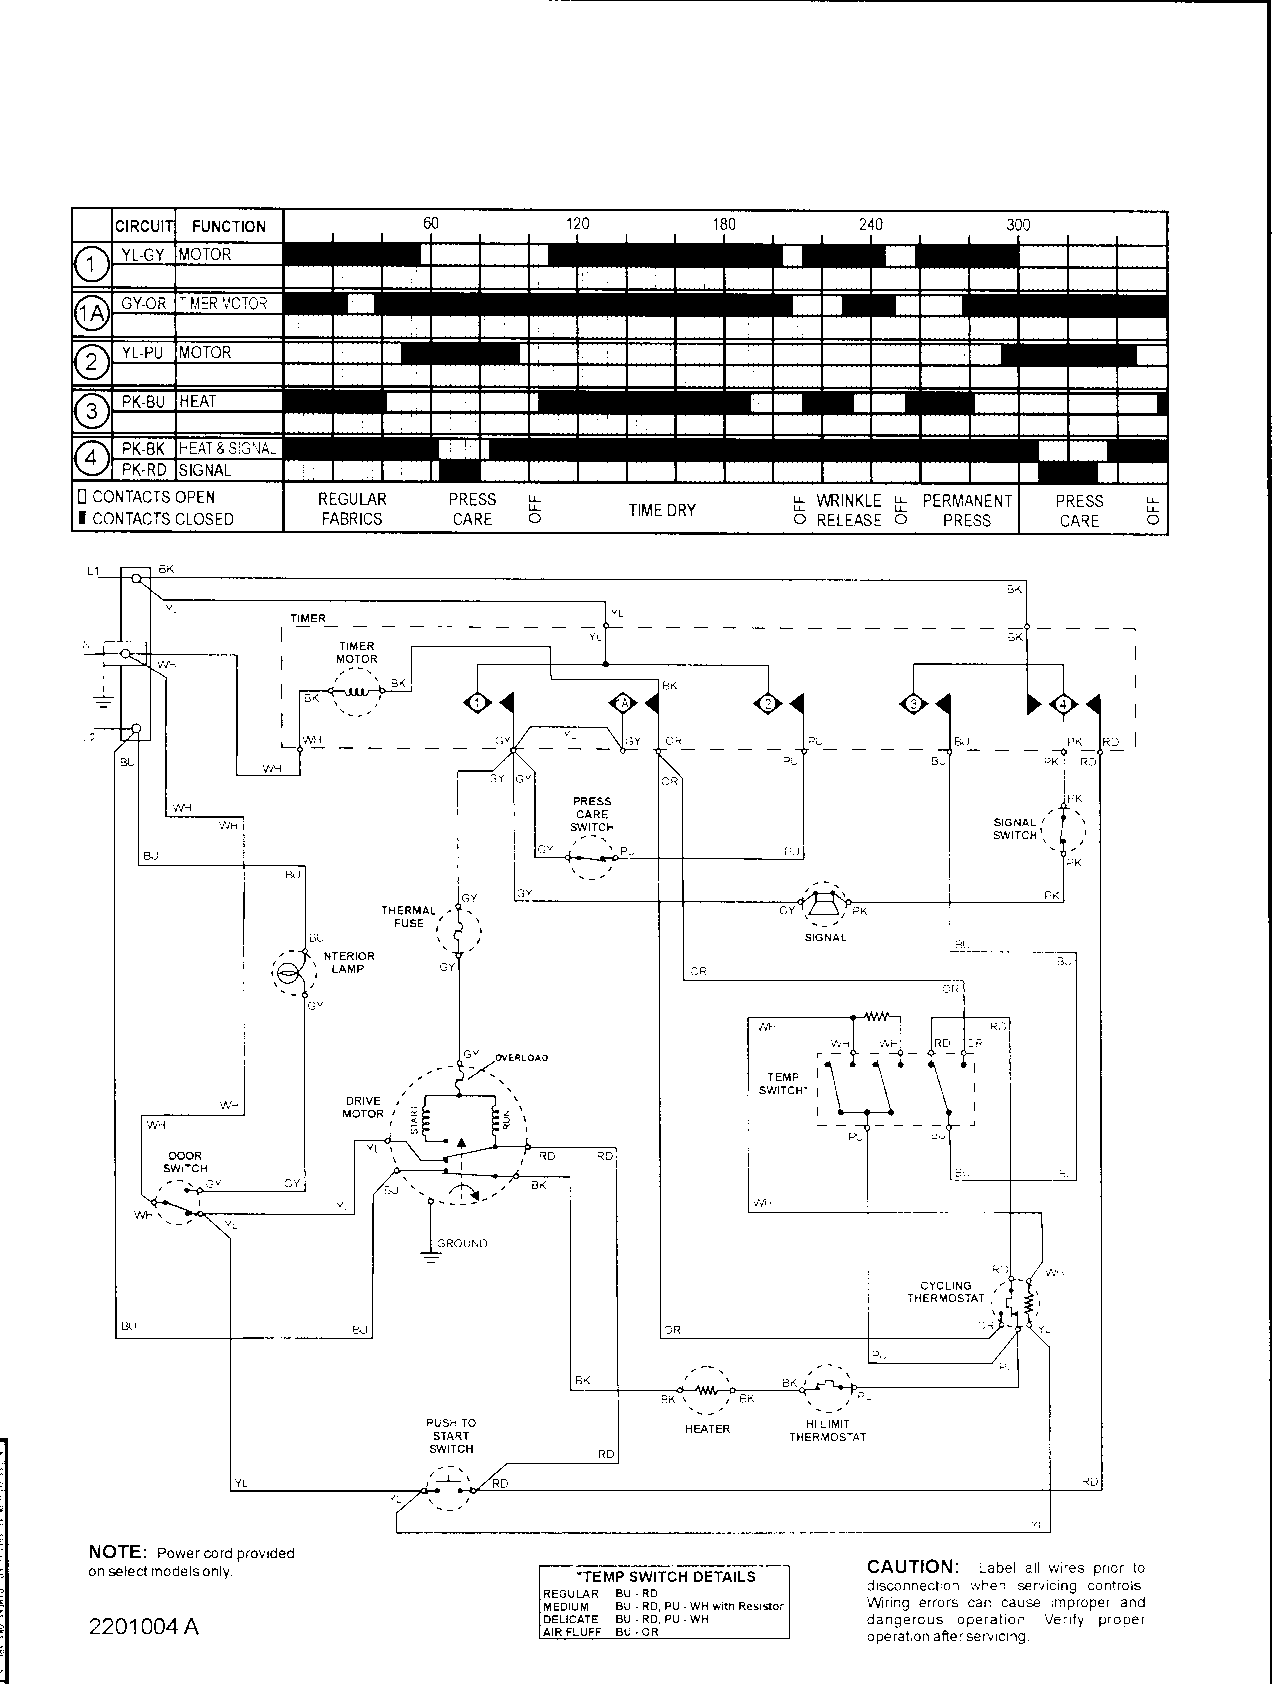 Wiring Diagram For Amana Gas Dryer Model Number Ngd Tq0